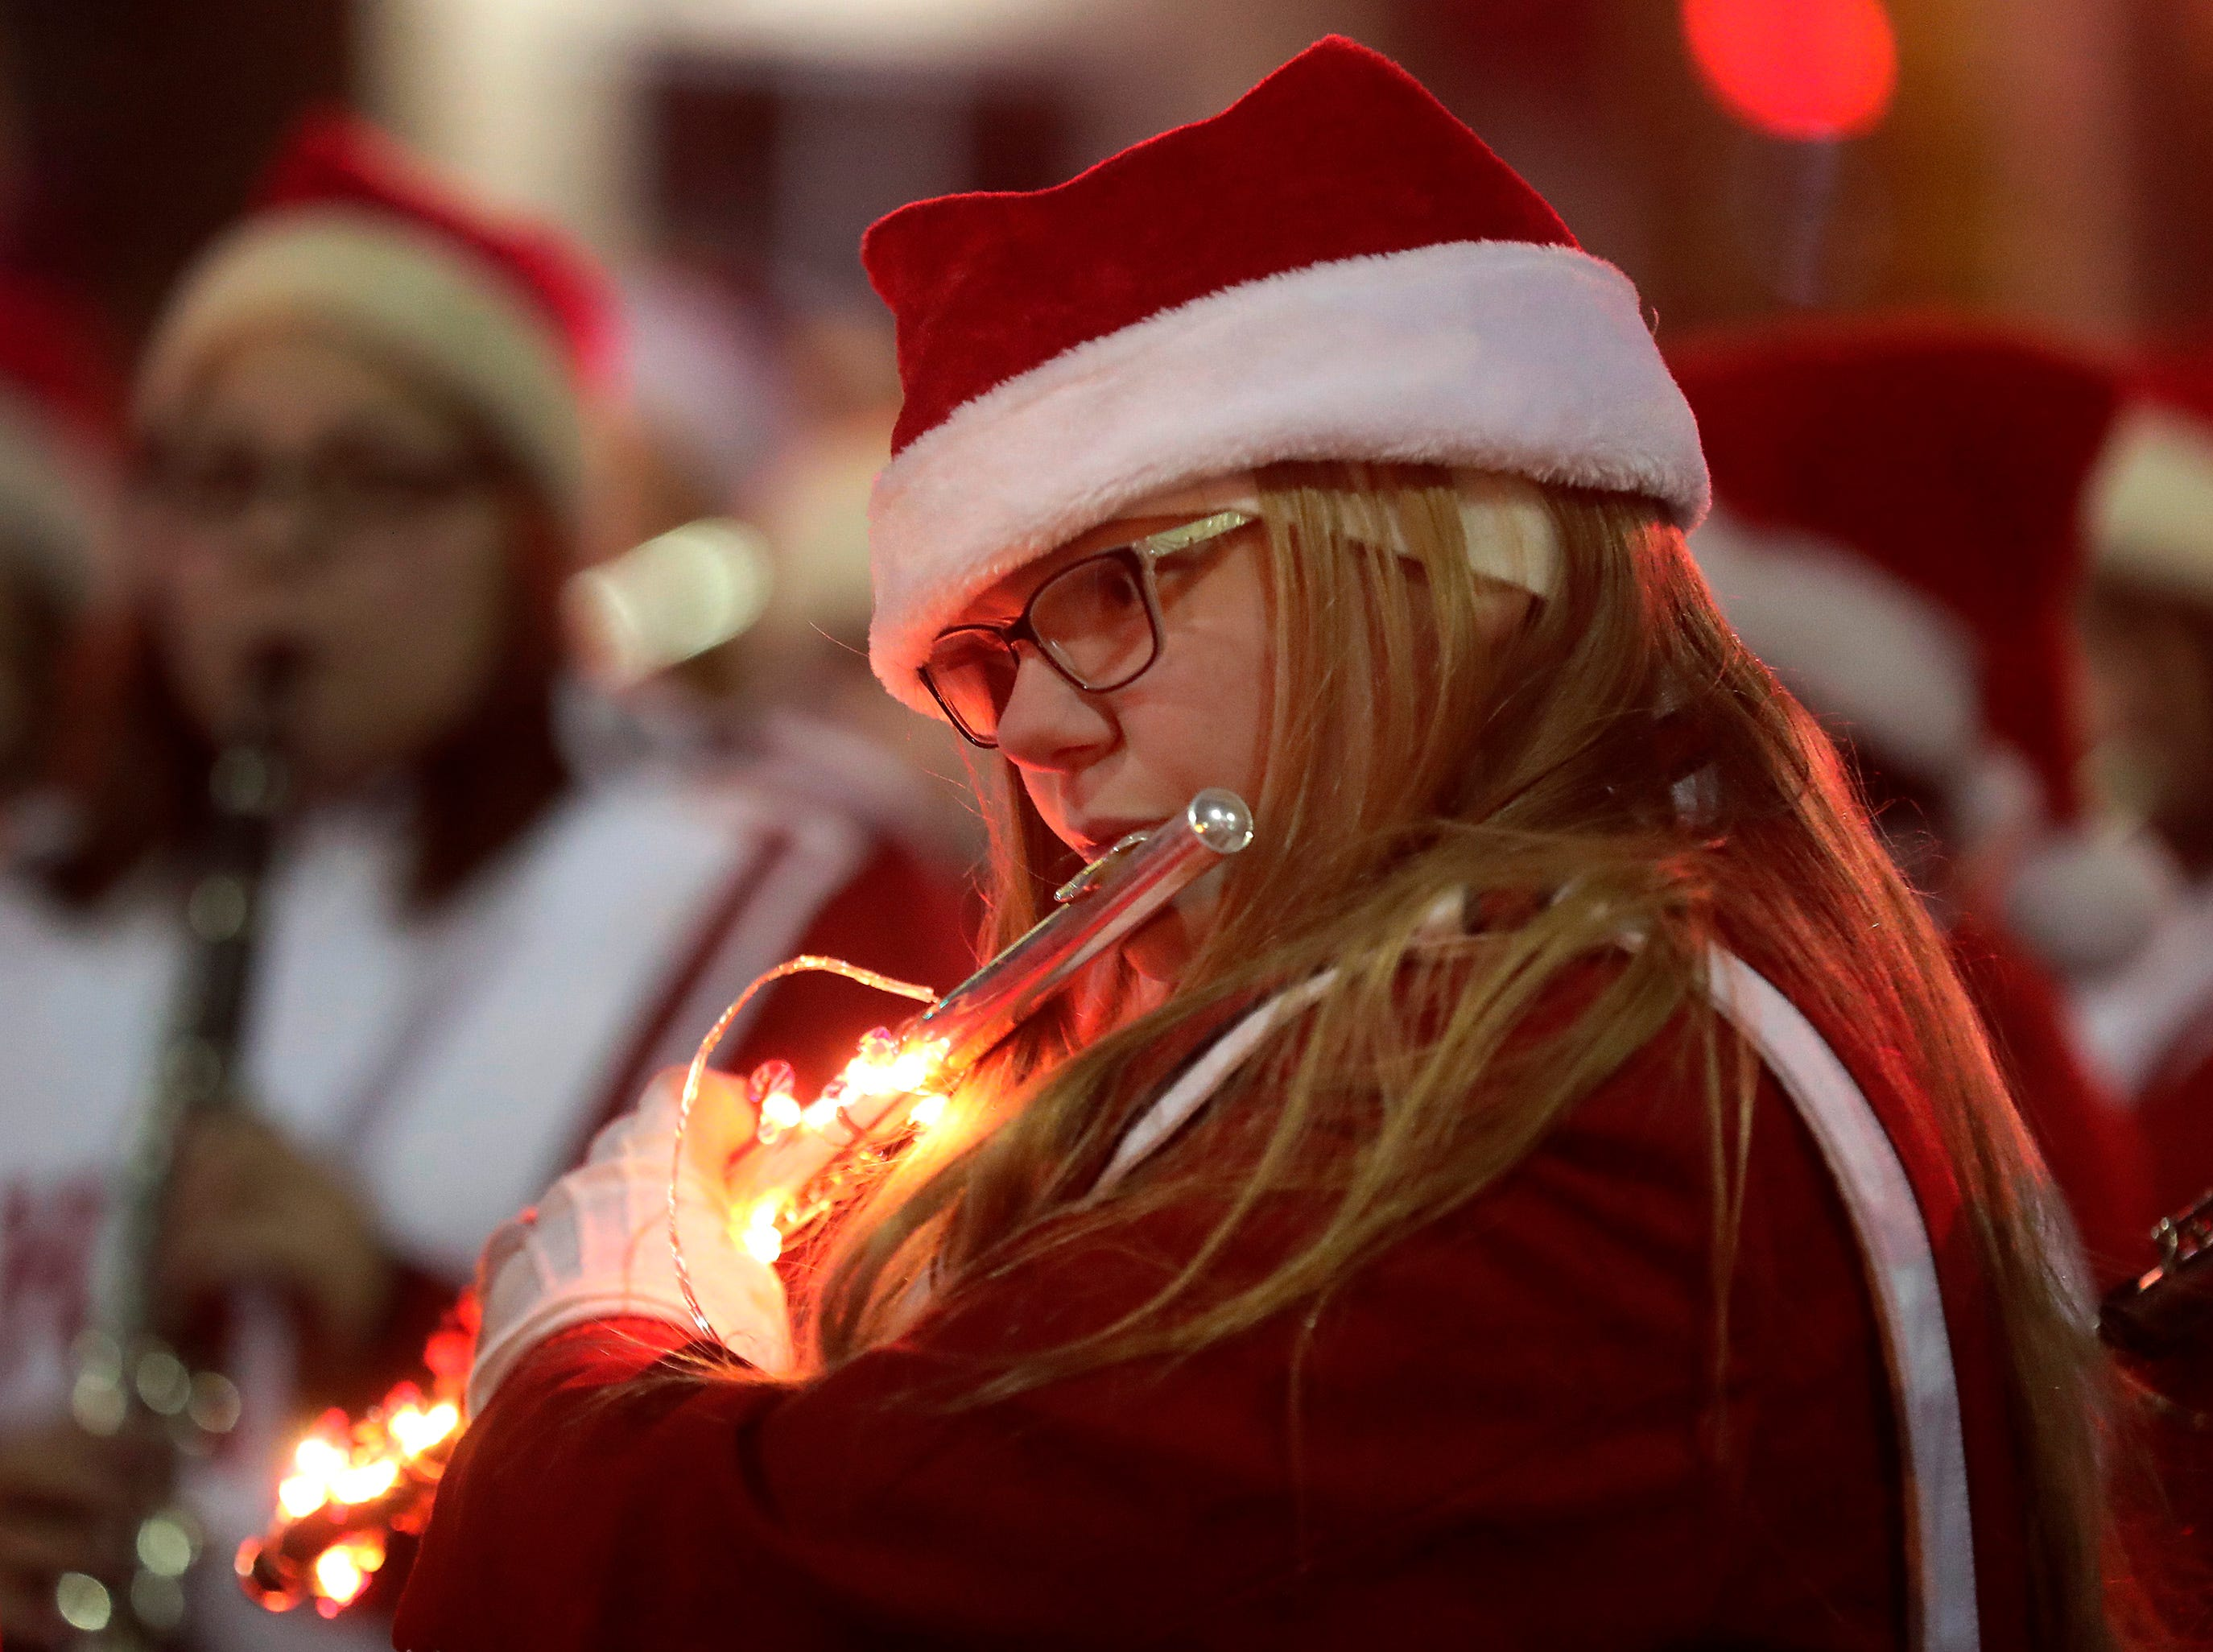 """Hortonville High School's Jennette Fredrickson plays during the 48th Annual Downtown Appleton Christmas Parade on Tuesday, Nov. 20, 2018 in Appleton, Wis. This year's theme was """"Home for the Holidays."""" Wm. Glasheen/USA TODAY NETWORK-Wisconsin."""